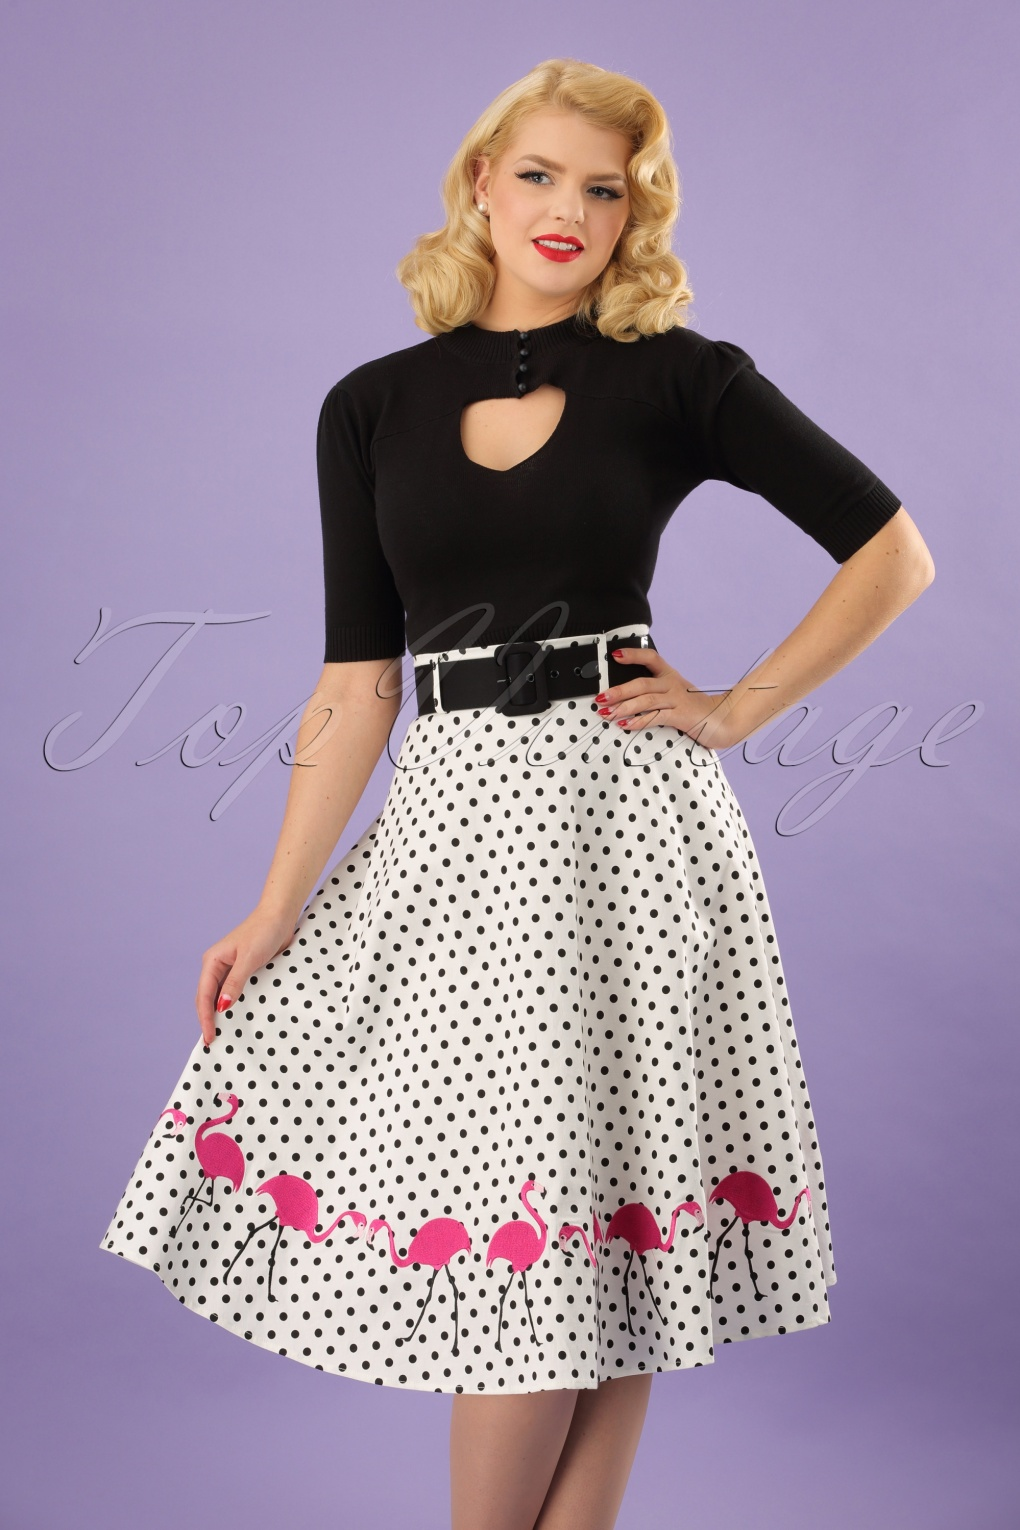 New Fifties Dresses | 50s Inspired Dresses 50s Fancy Flamingo Swing Skirt in White £54.57 AT vintagedancer.com